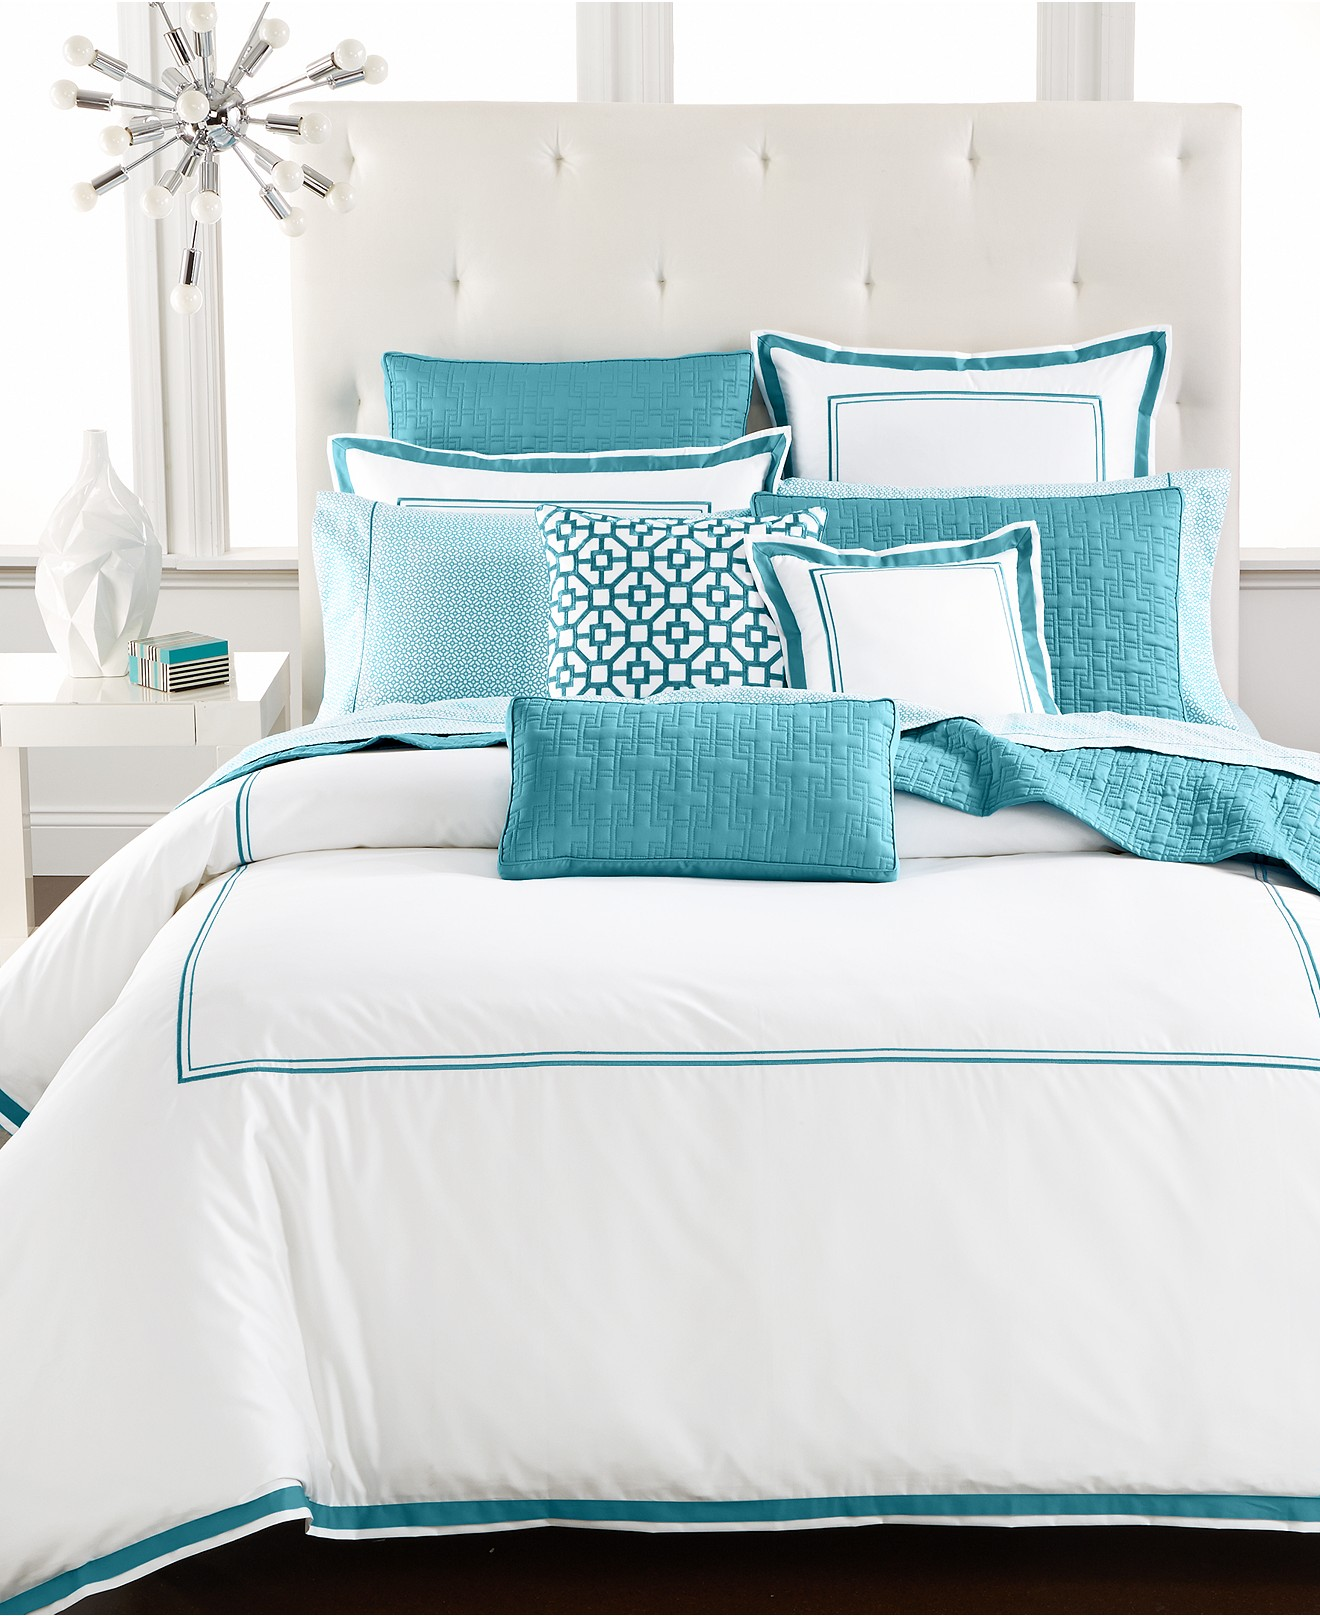 Hotel Collection Aqua Embroidered Frame Bedding Collection